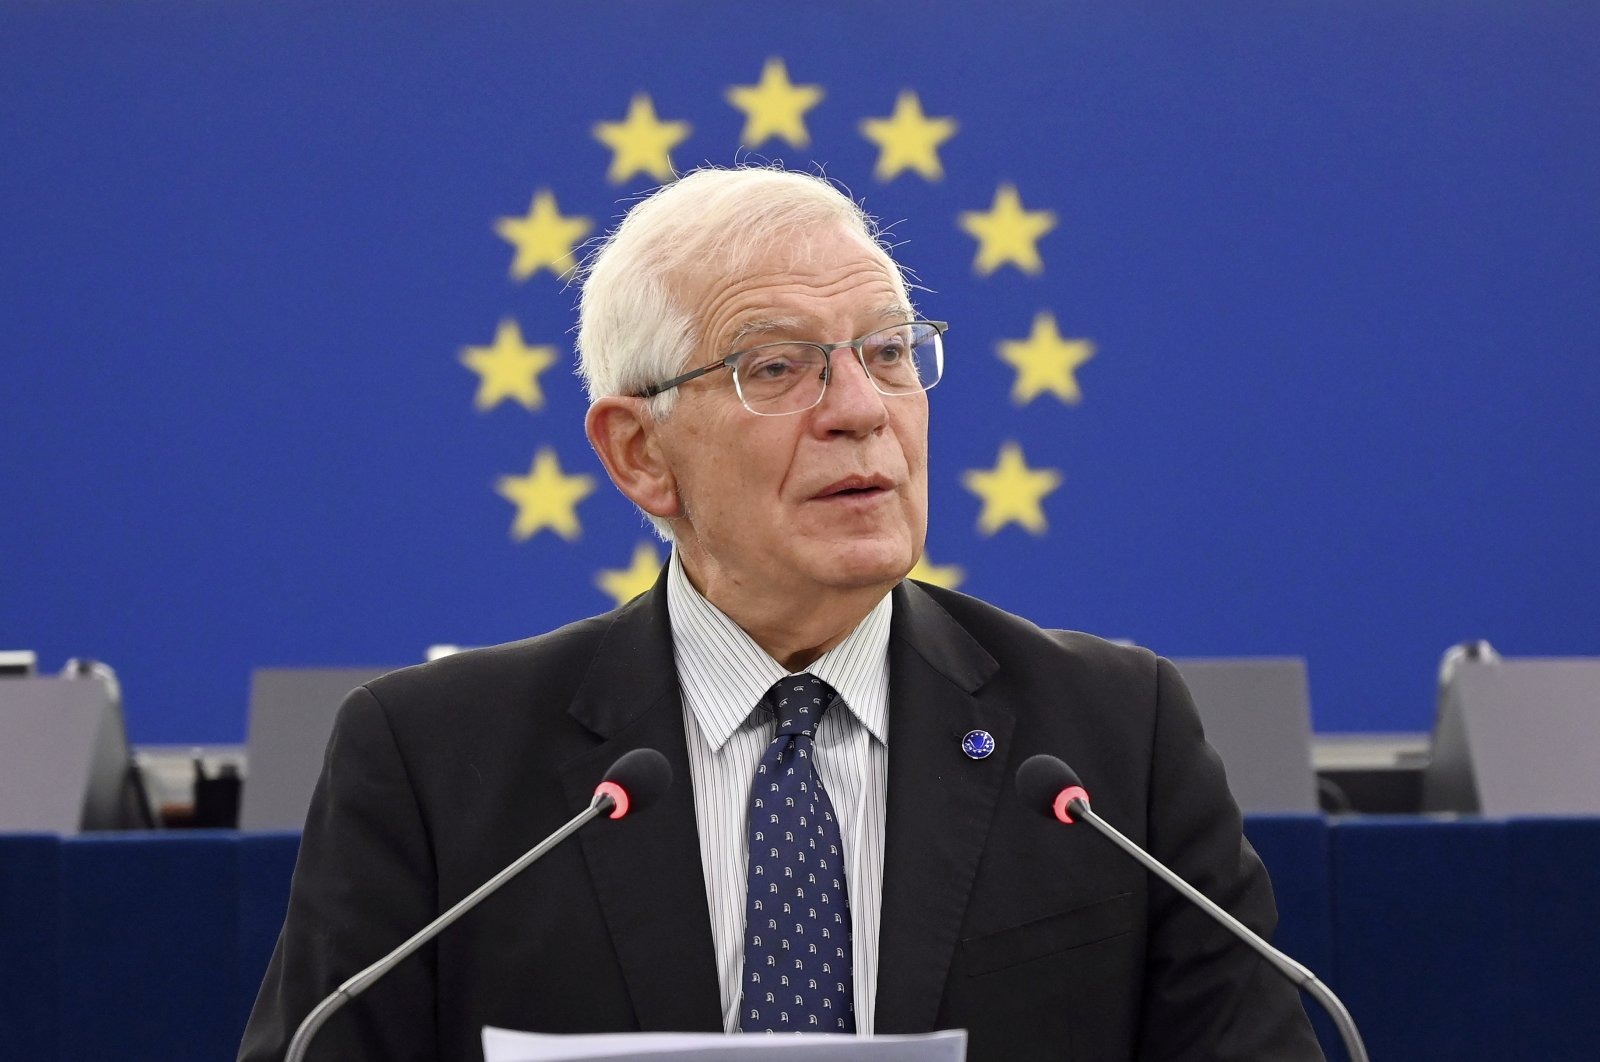 EU foreign policy chief Josep Borrell delivers a speech during a debate on the future of EU-U.S. relations as part of a plenary session at the European Parliament in Strasbourg, France, Oct. 5, 2021. (REUTERS Photo)